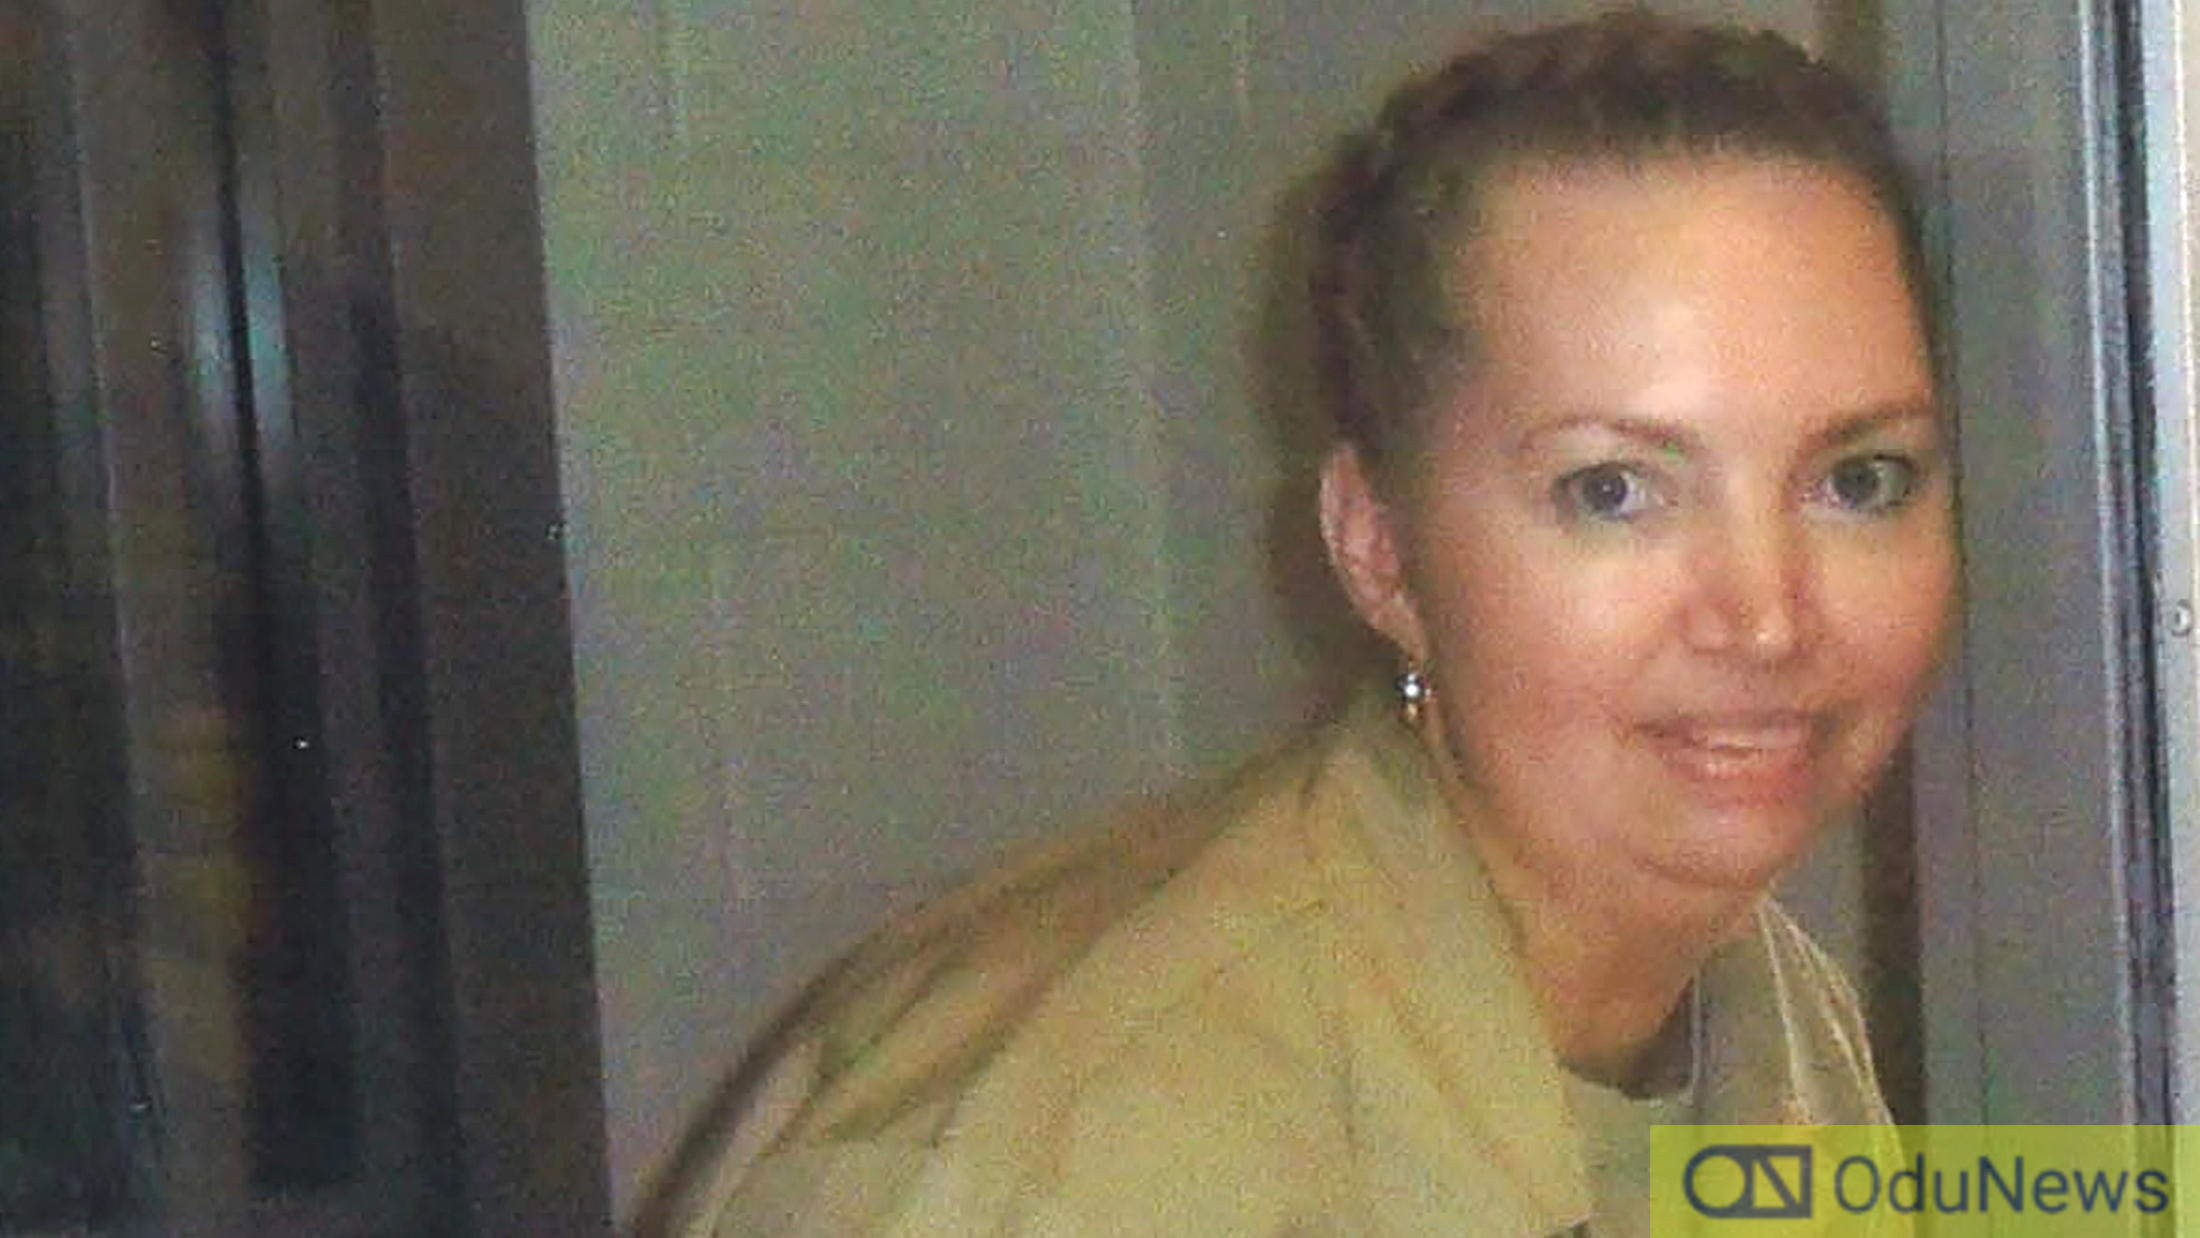 A Kansas woman was executed Wednesday for strangling an expectant mother